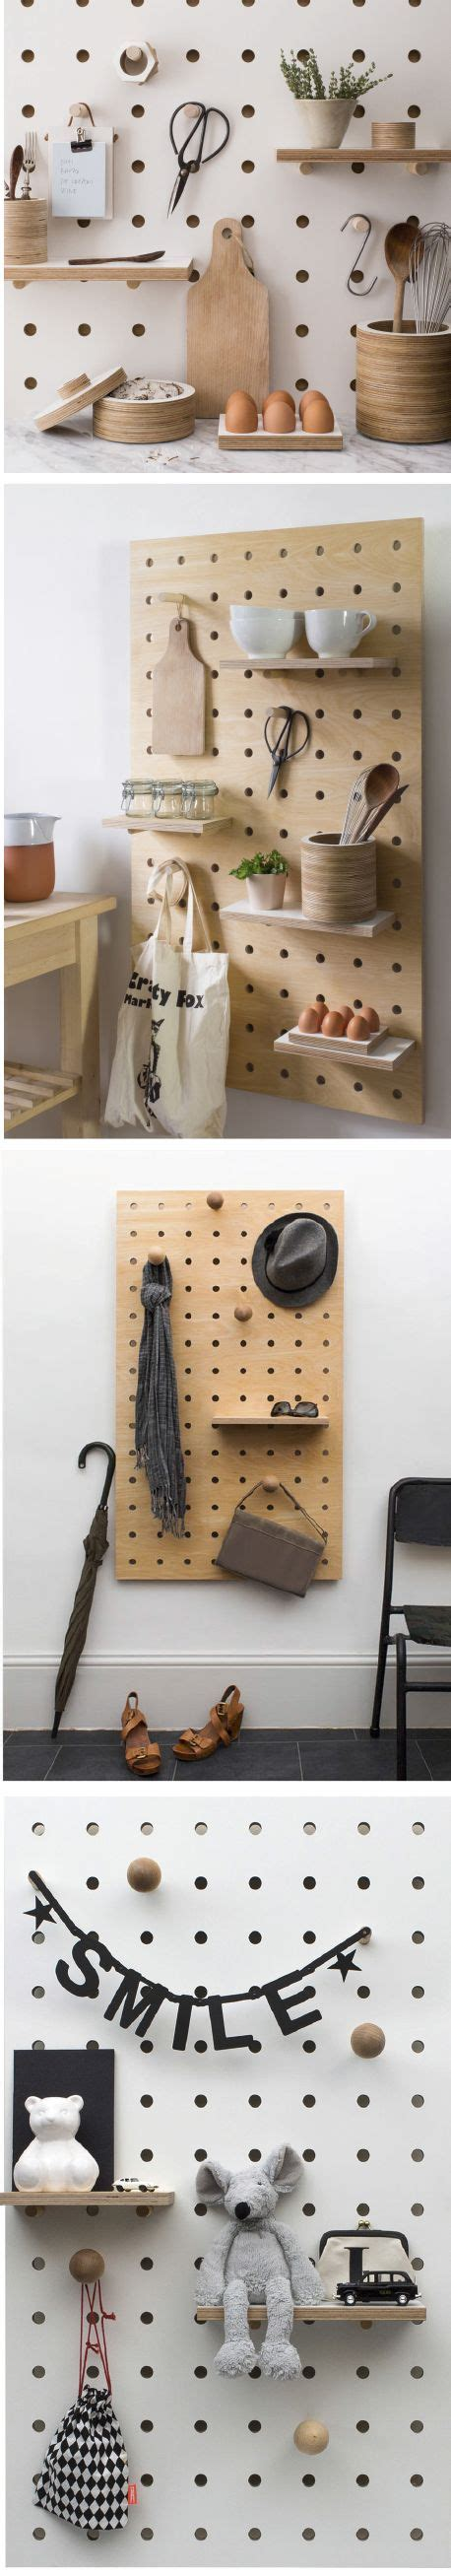 peg it all pegboards by kreisdesign design milk 52 b 228 sta bilderna om bl inr p 229 pinterest v 228 xter